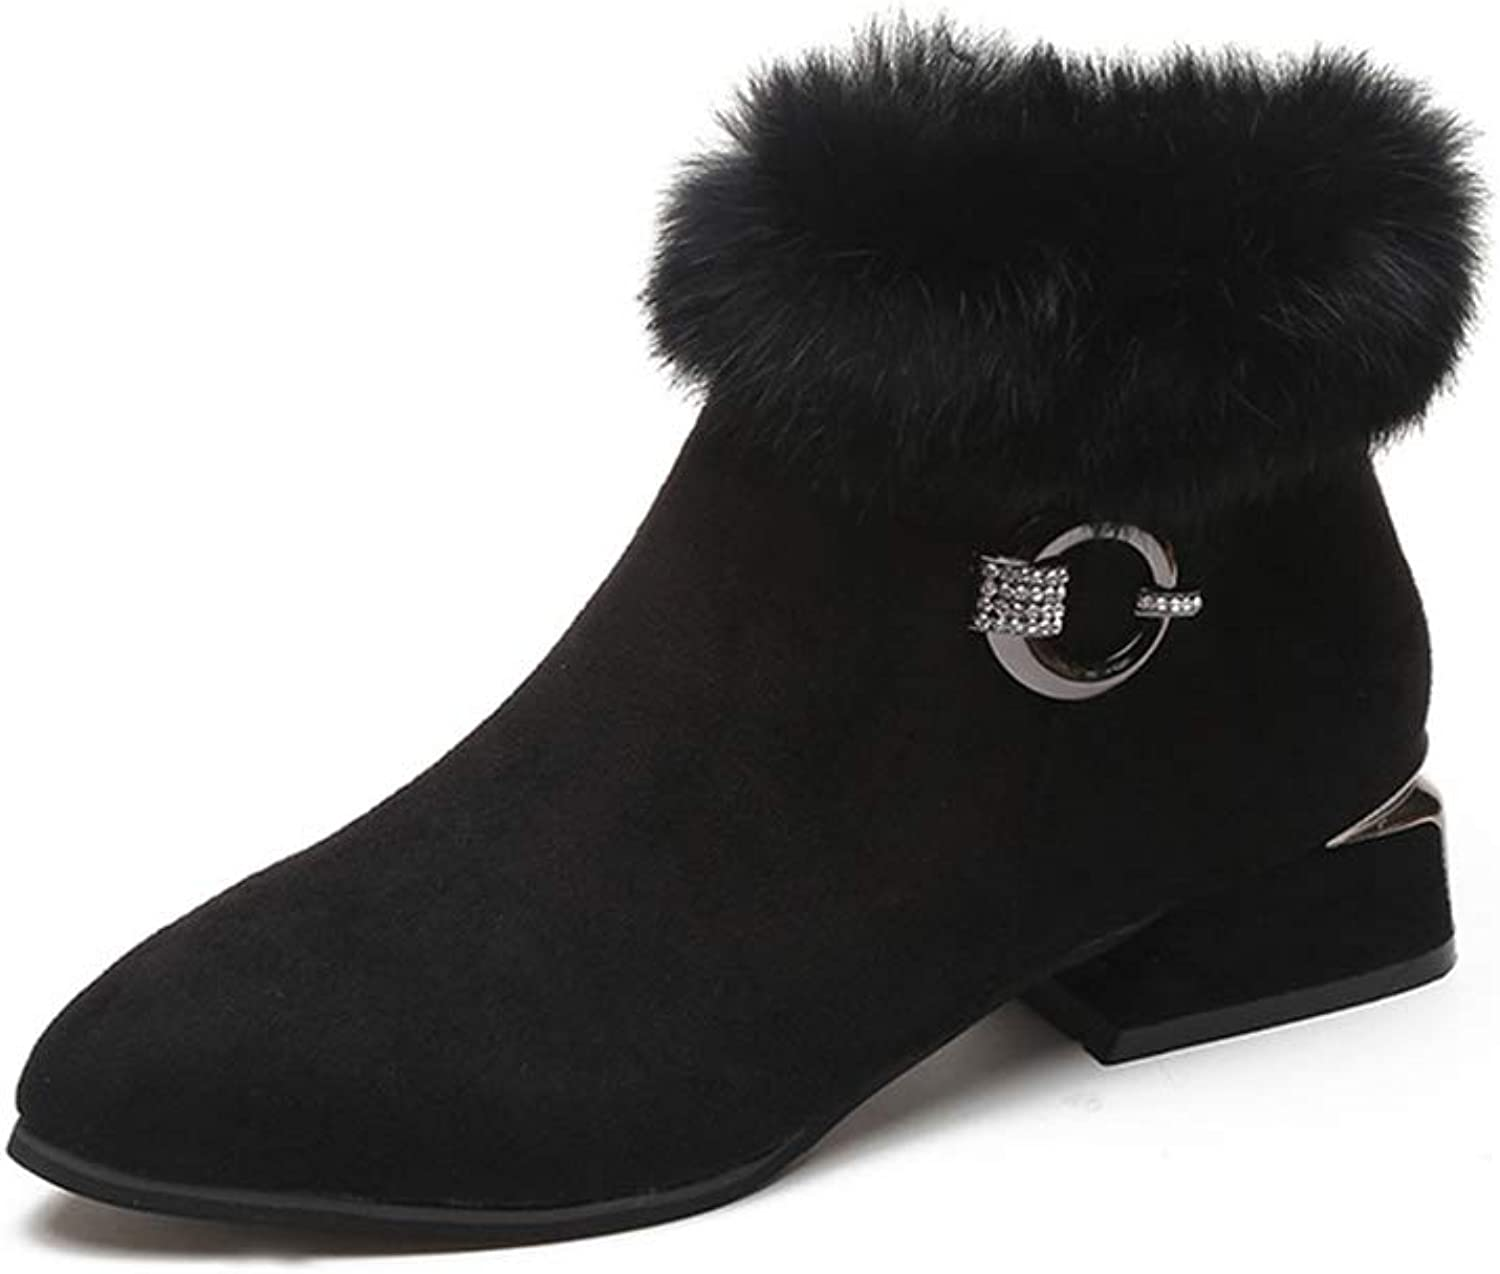 Quality.A Women's Martin Boots British Wind Booties Classic Casual Boots